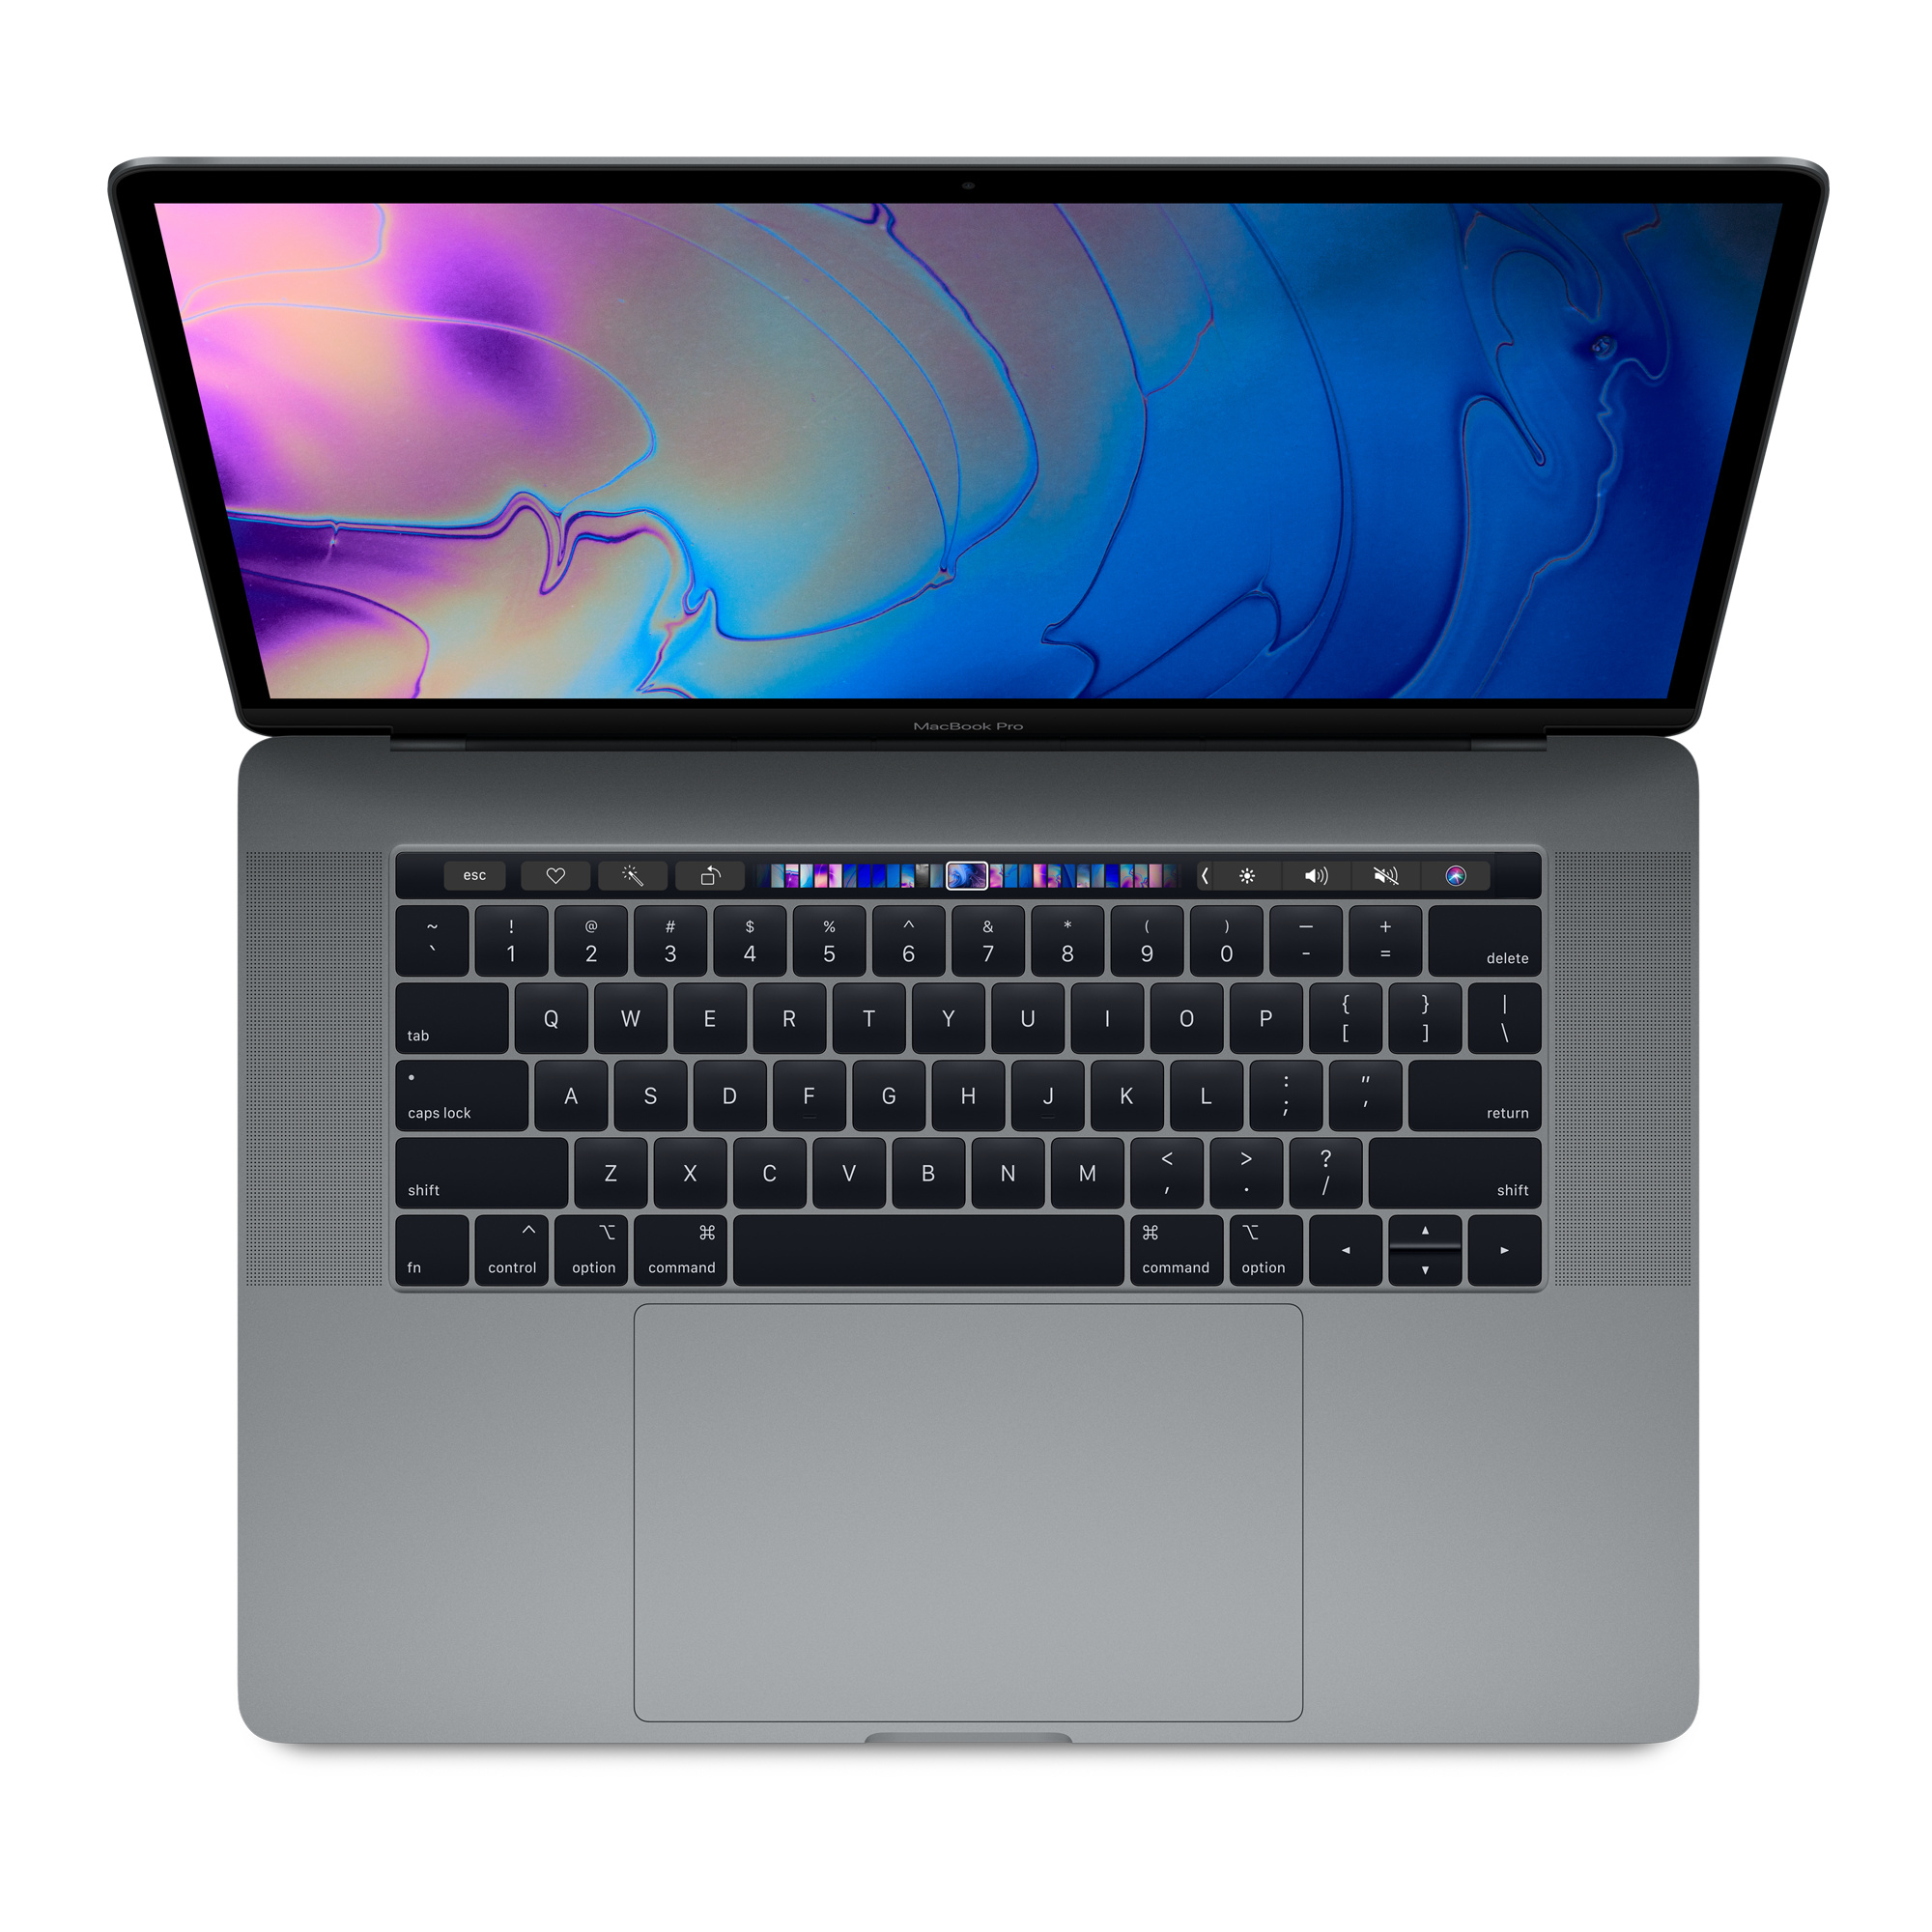 MacBook Pro - 15in - i7 2.2GHz - 16GB Ram - 256GB SSD - Touch Bar And Touch Id - Radeon Pro 555x With 4GB Gddr5 - Space Gray - Qwerty Uk